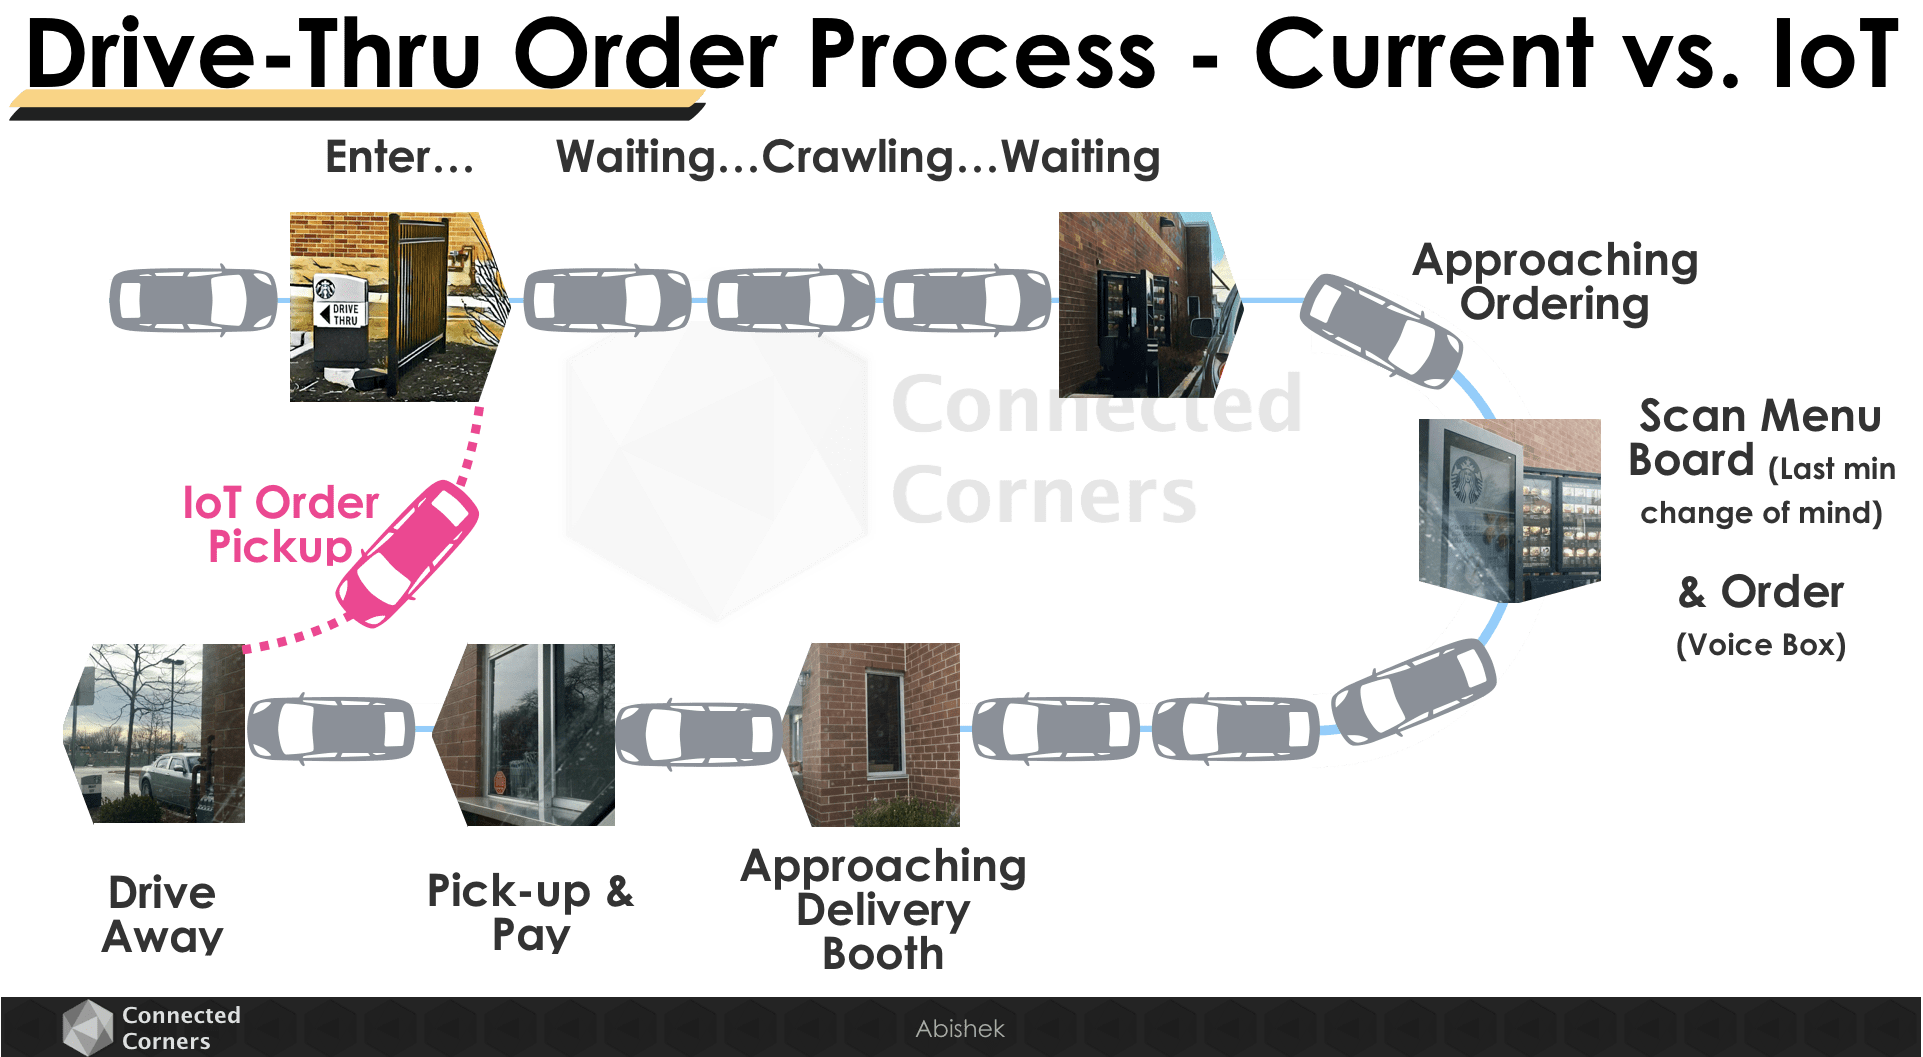 Drive-thru order process - current vs. IoT - Connected Corners